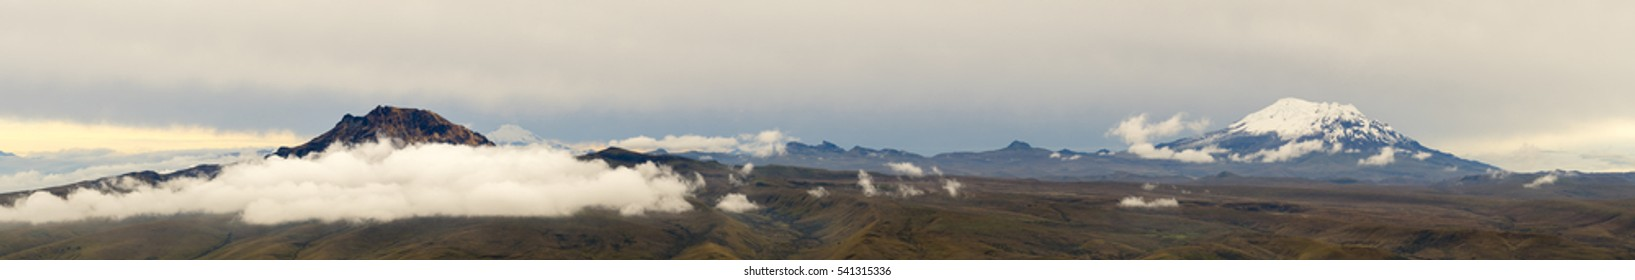 Panorama of the Andes showing Sincholagua (left) and Antisana (right) volcanoes. With Cayambe volcano in the distance behind Sincholagua. Viewed from a high point on Cotopaxi Volcano, Ecuador.